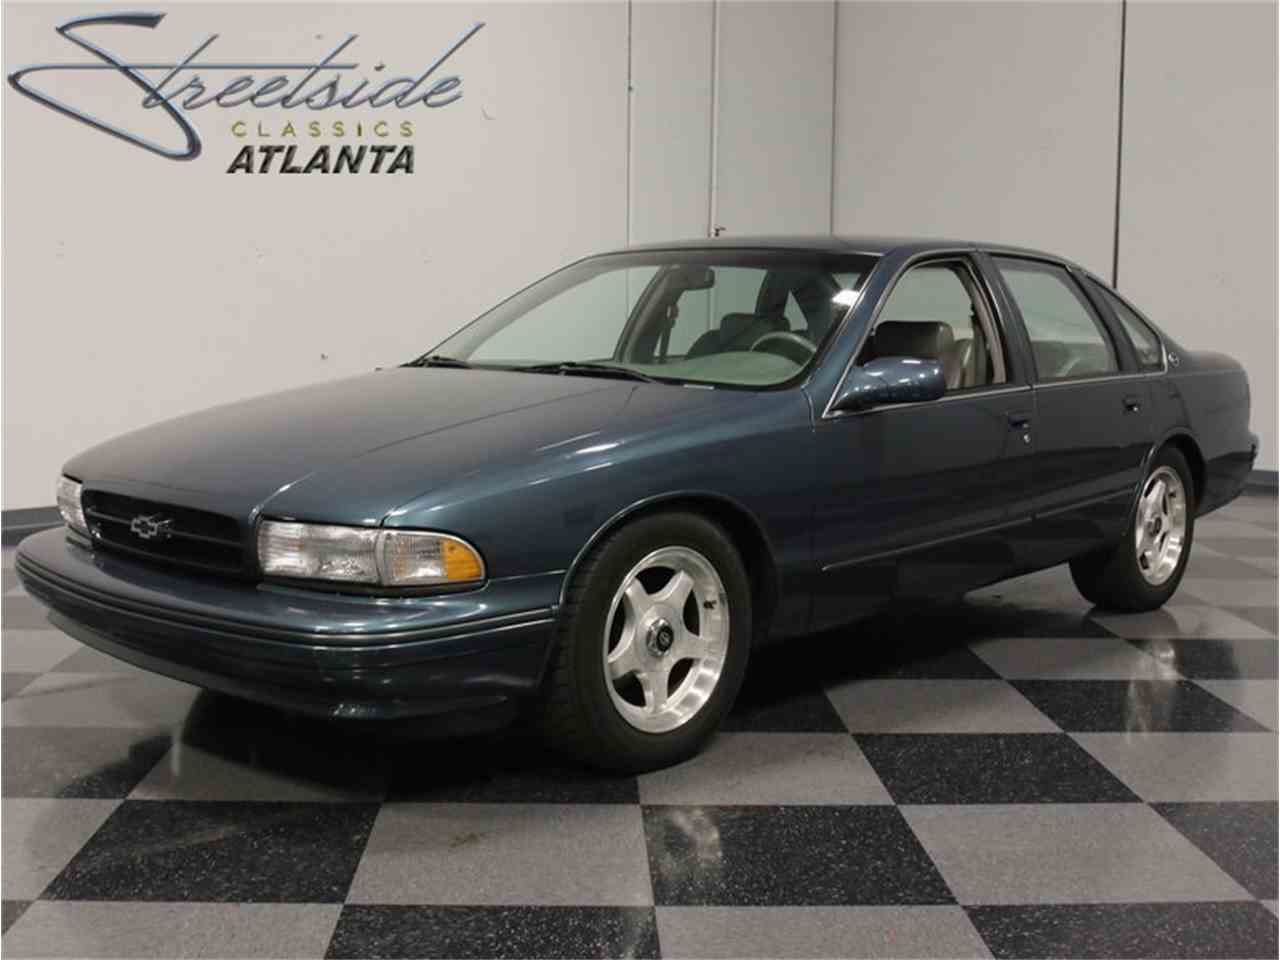 1995 Chevrolet Impala Ss For Sale Classiccars Com Cc